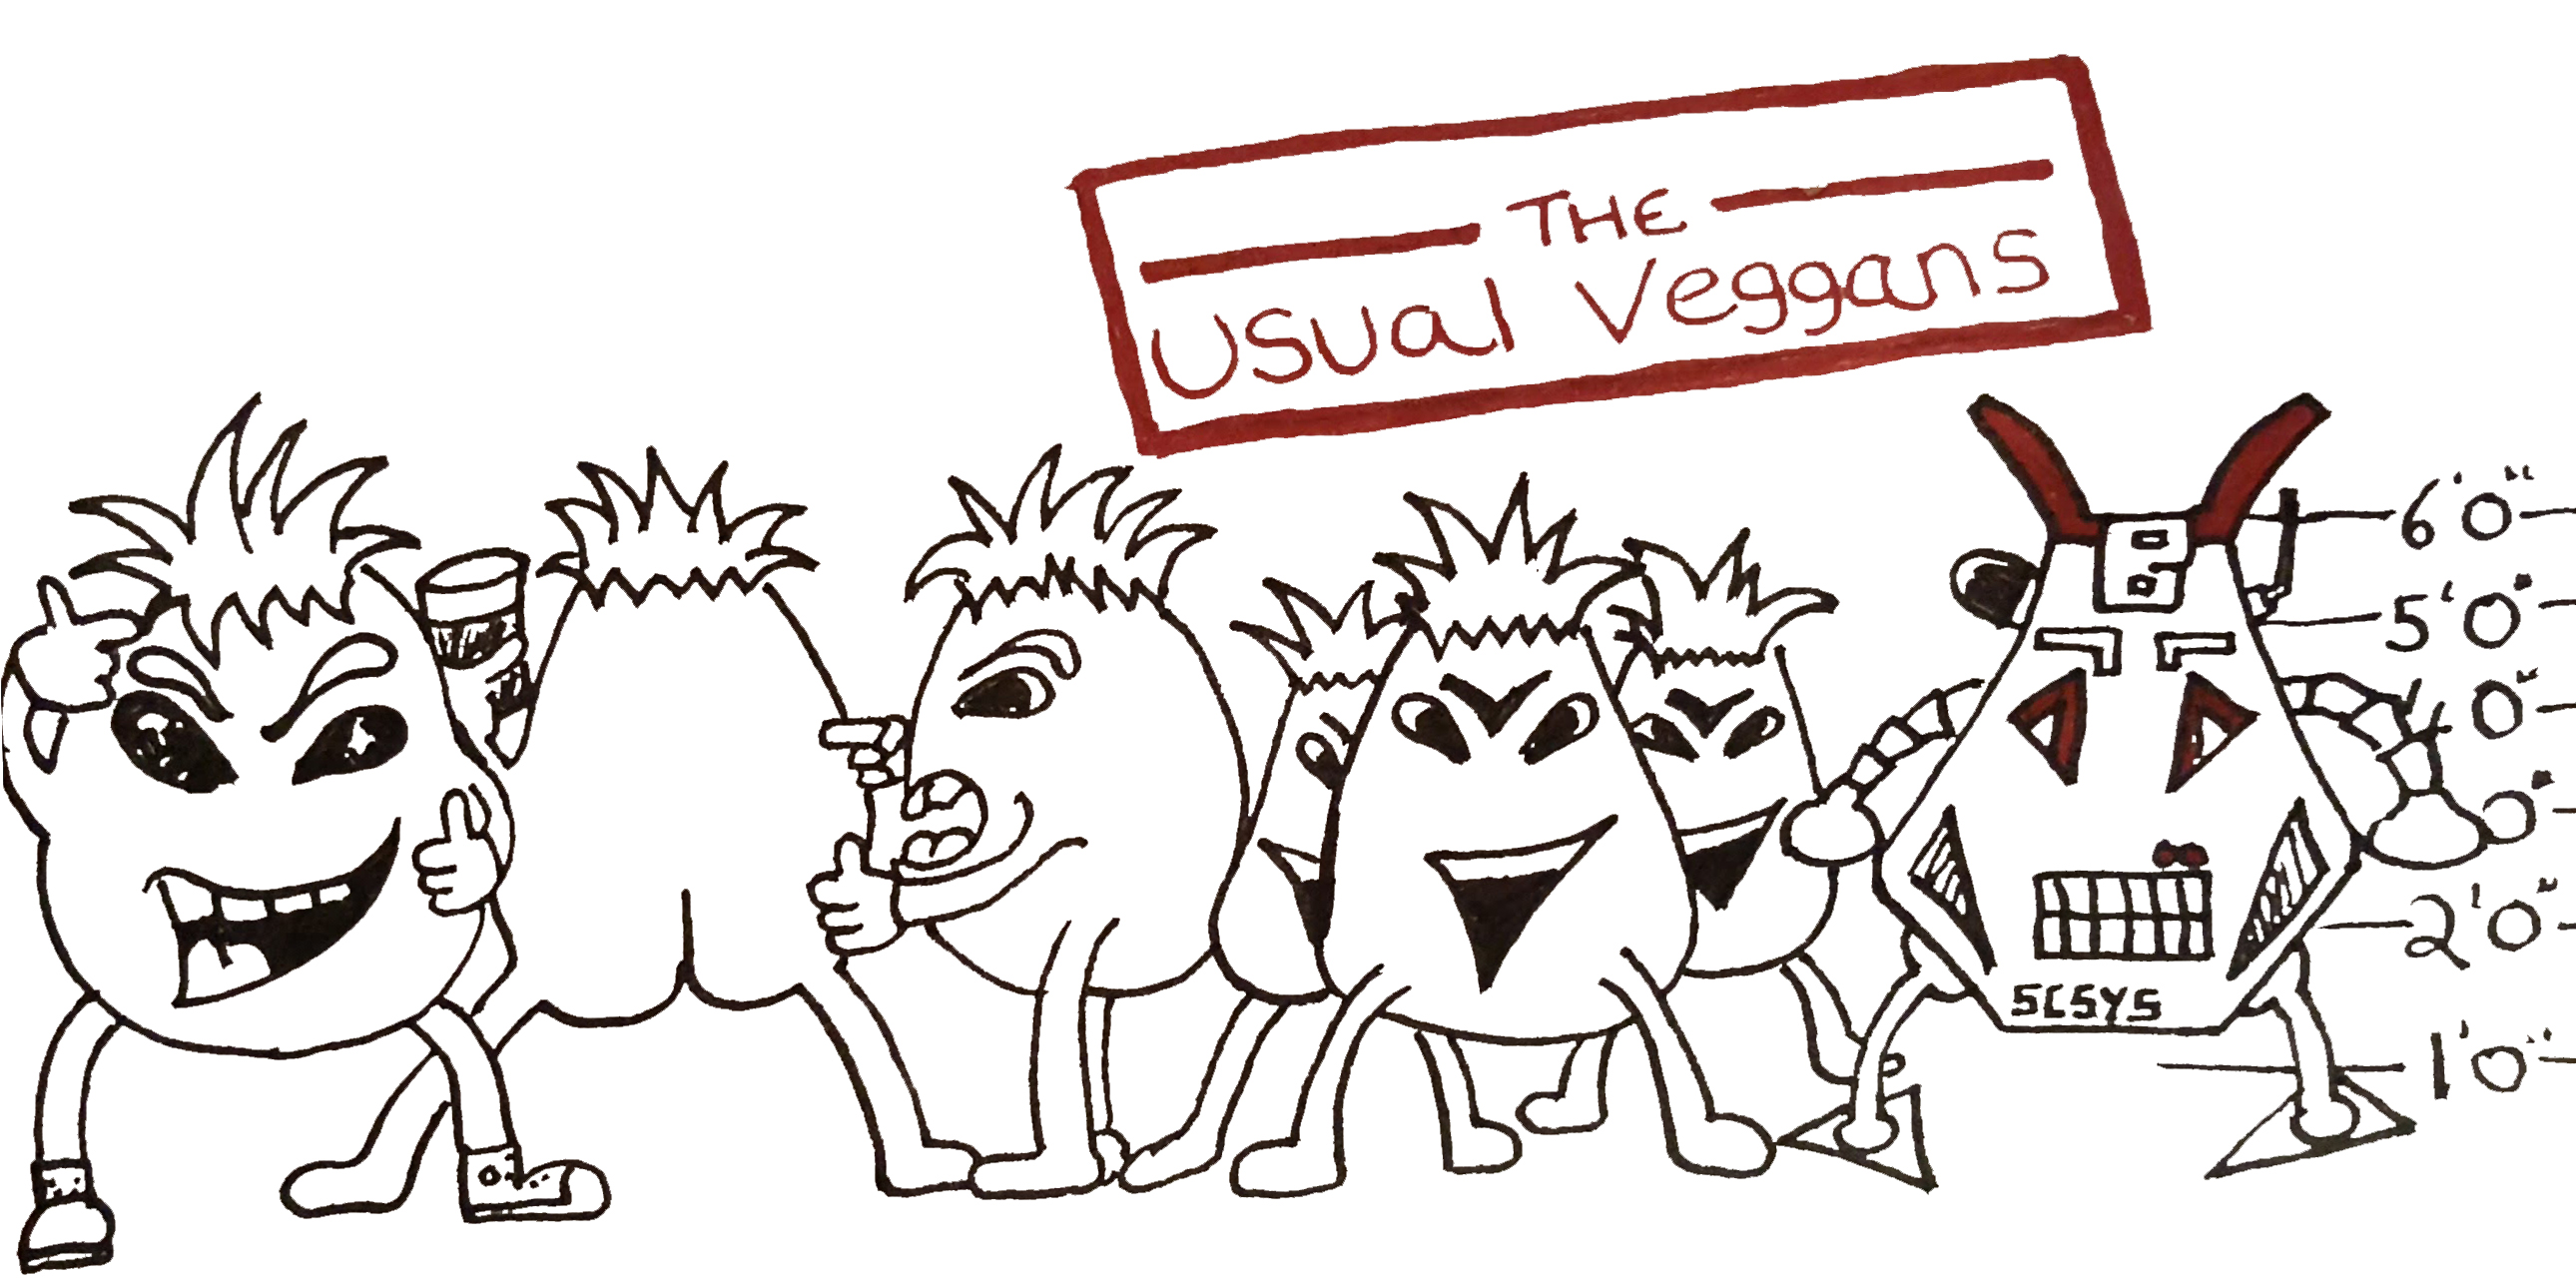 The line up of the usual words as Veggan characters